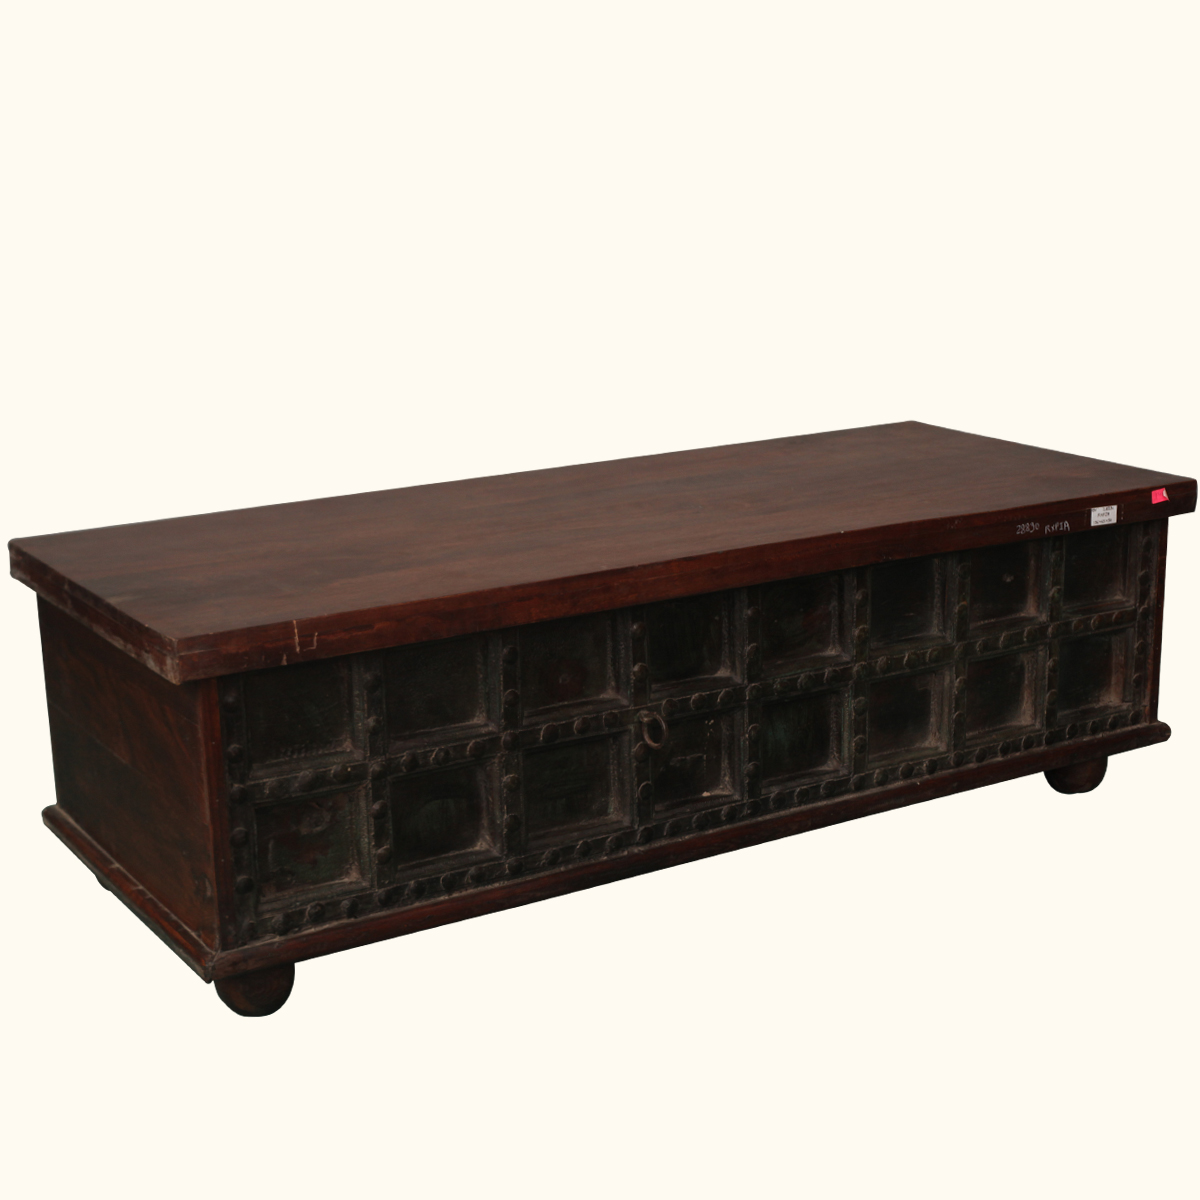 Gothic reclaimed wood iron antique style storage coffee table box chest trunk ebay Coffee table chest with storage